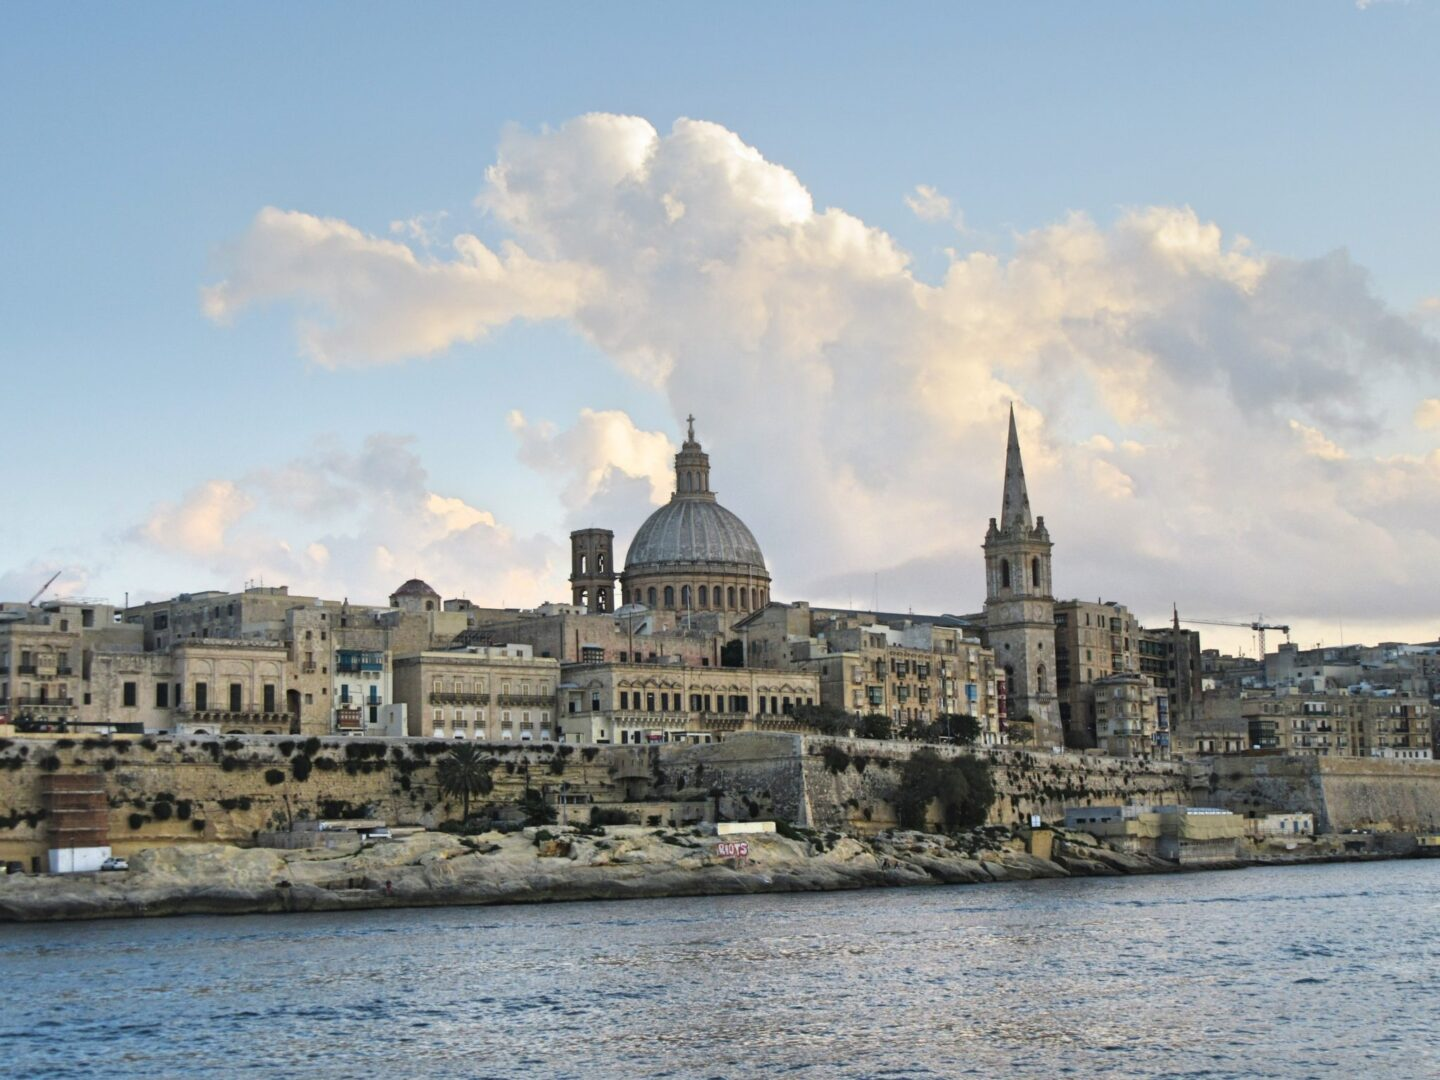 Malta: Visiting Valletta – An Introduction